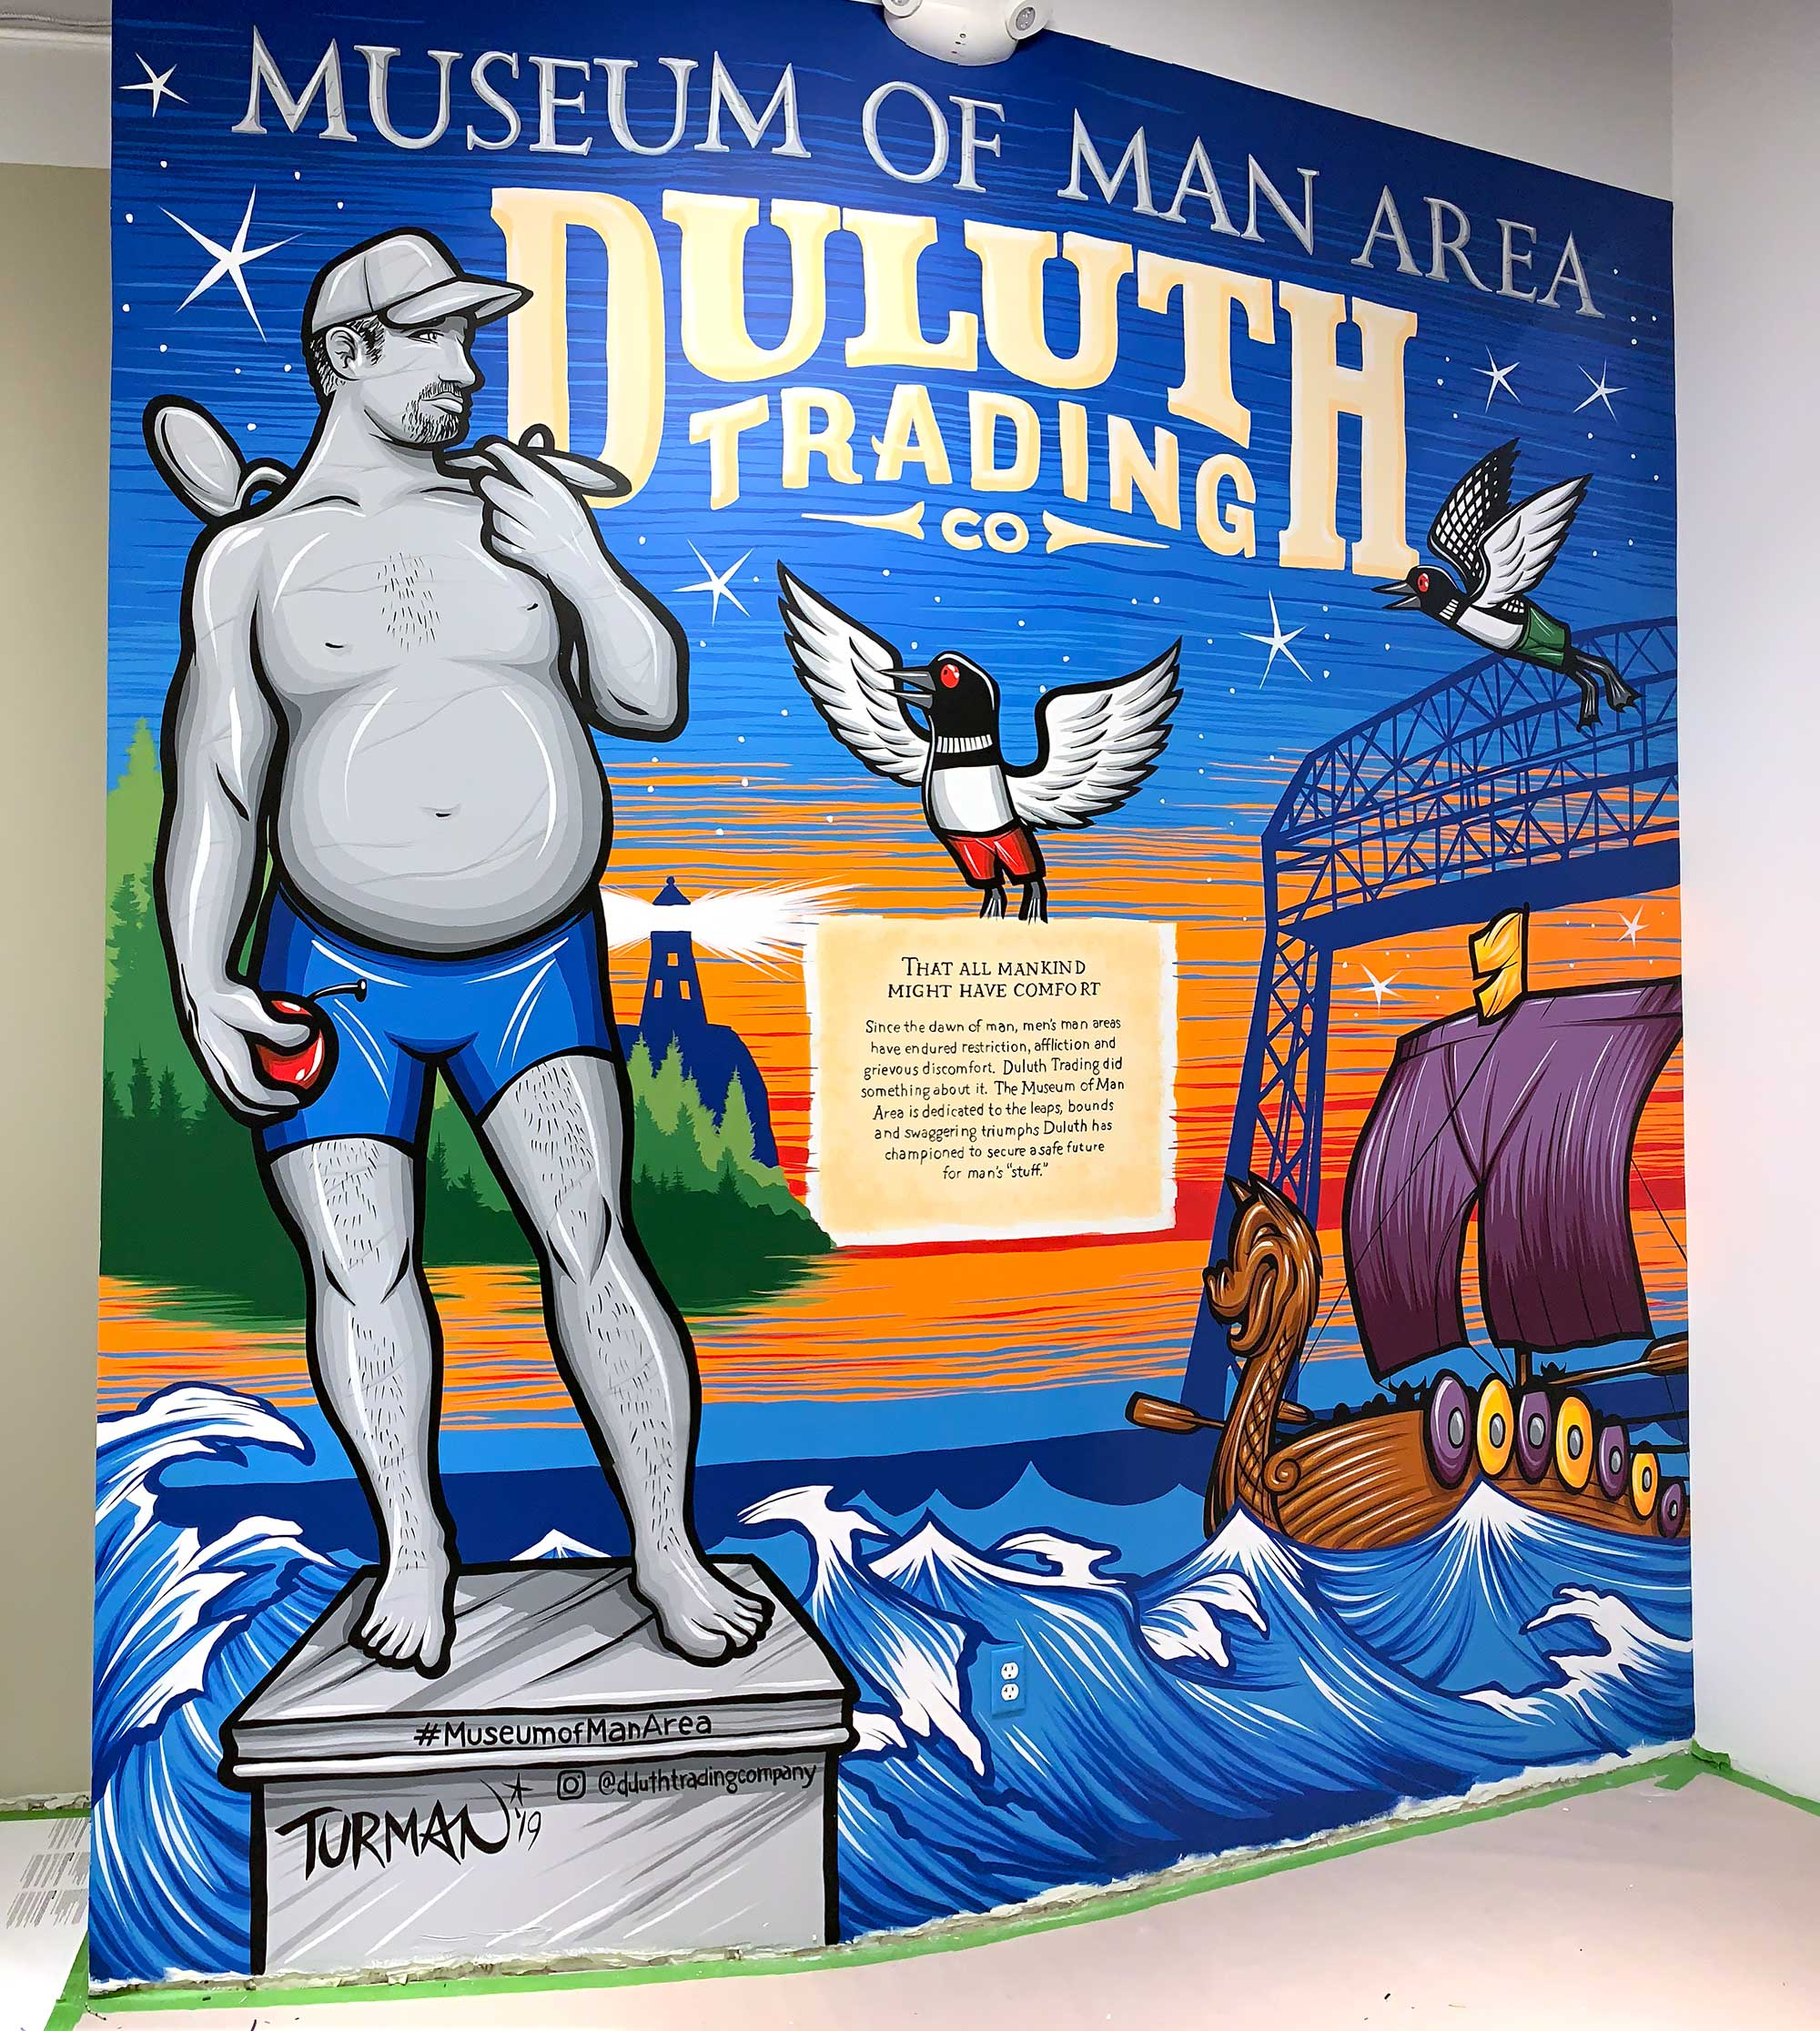 Duluth Trading Company Mall of America Mural Museum of Man